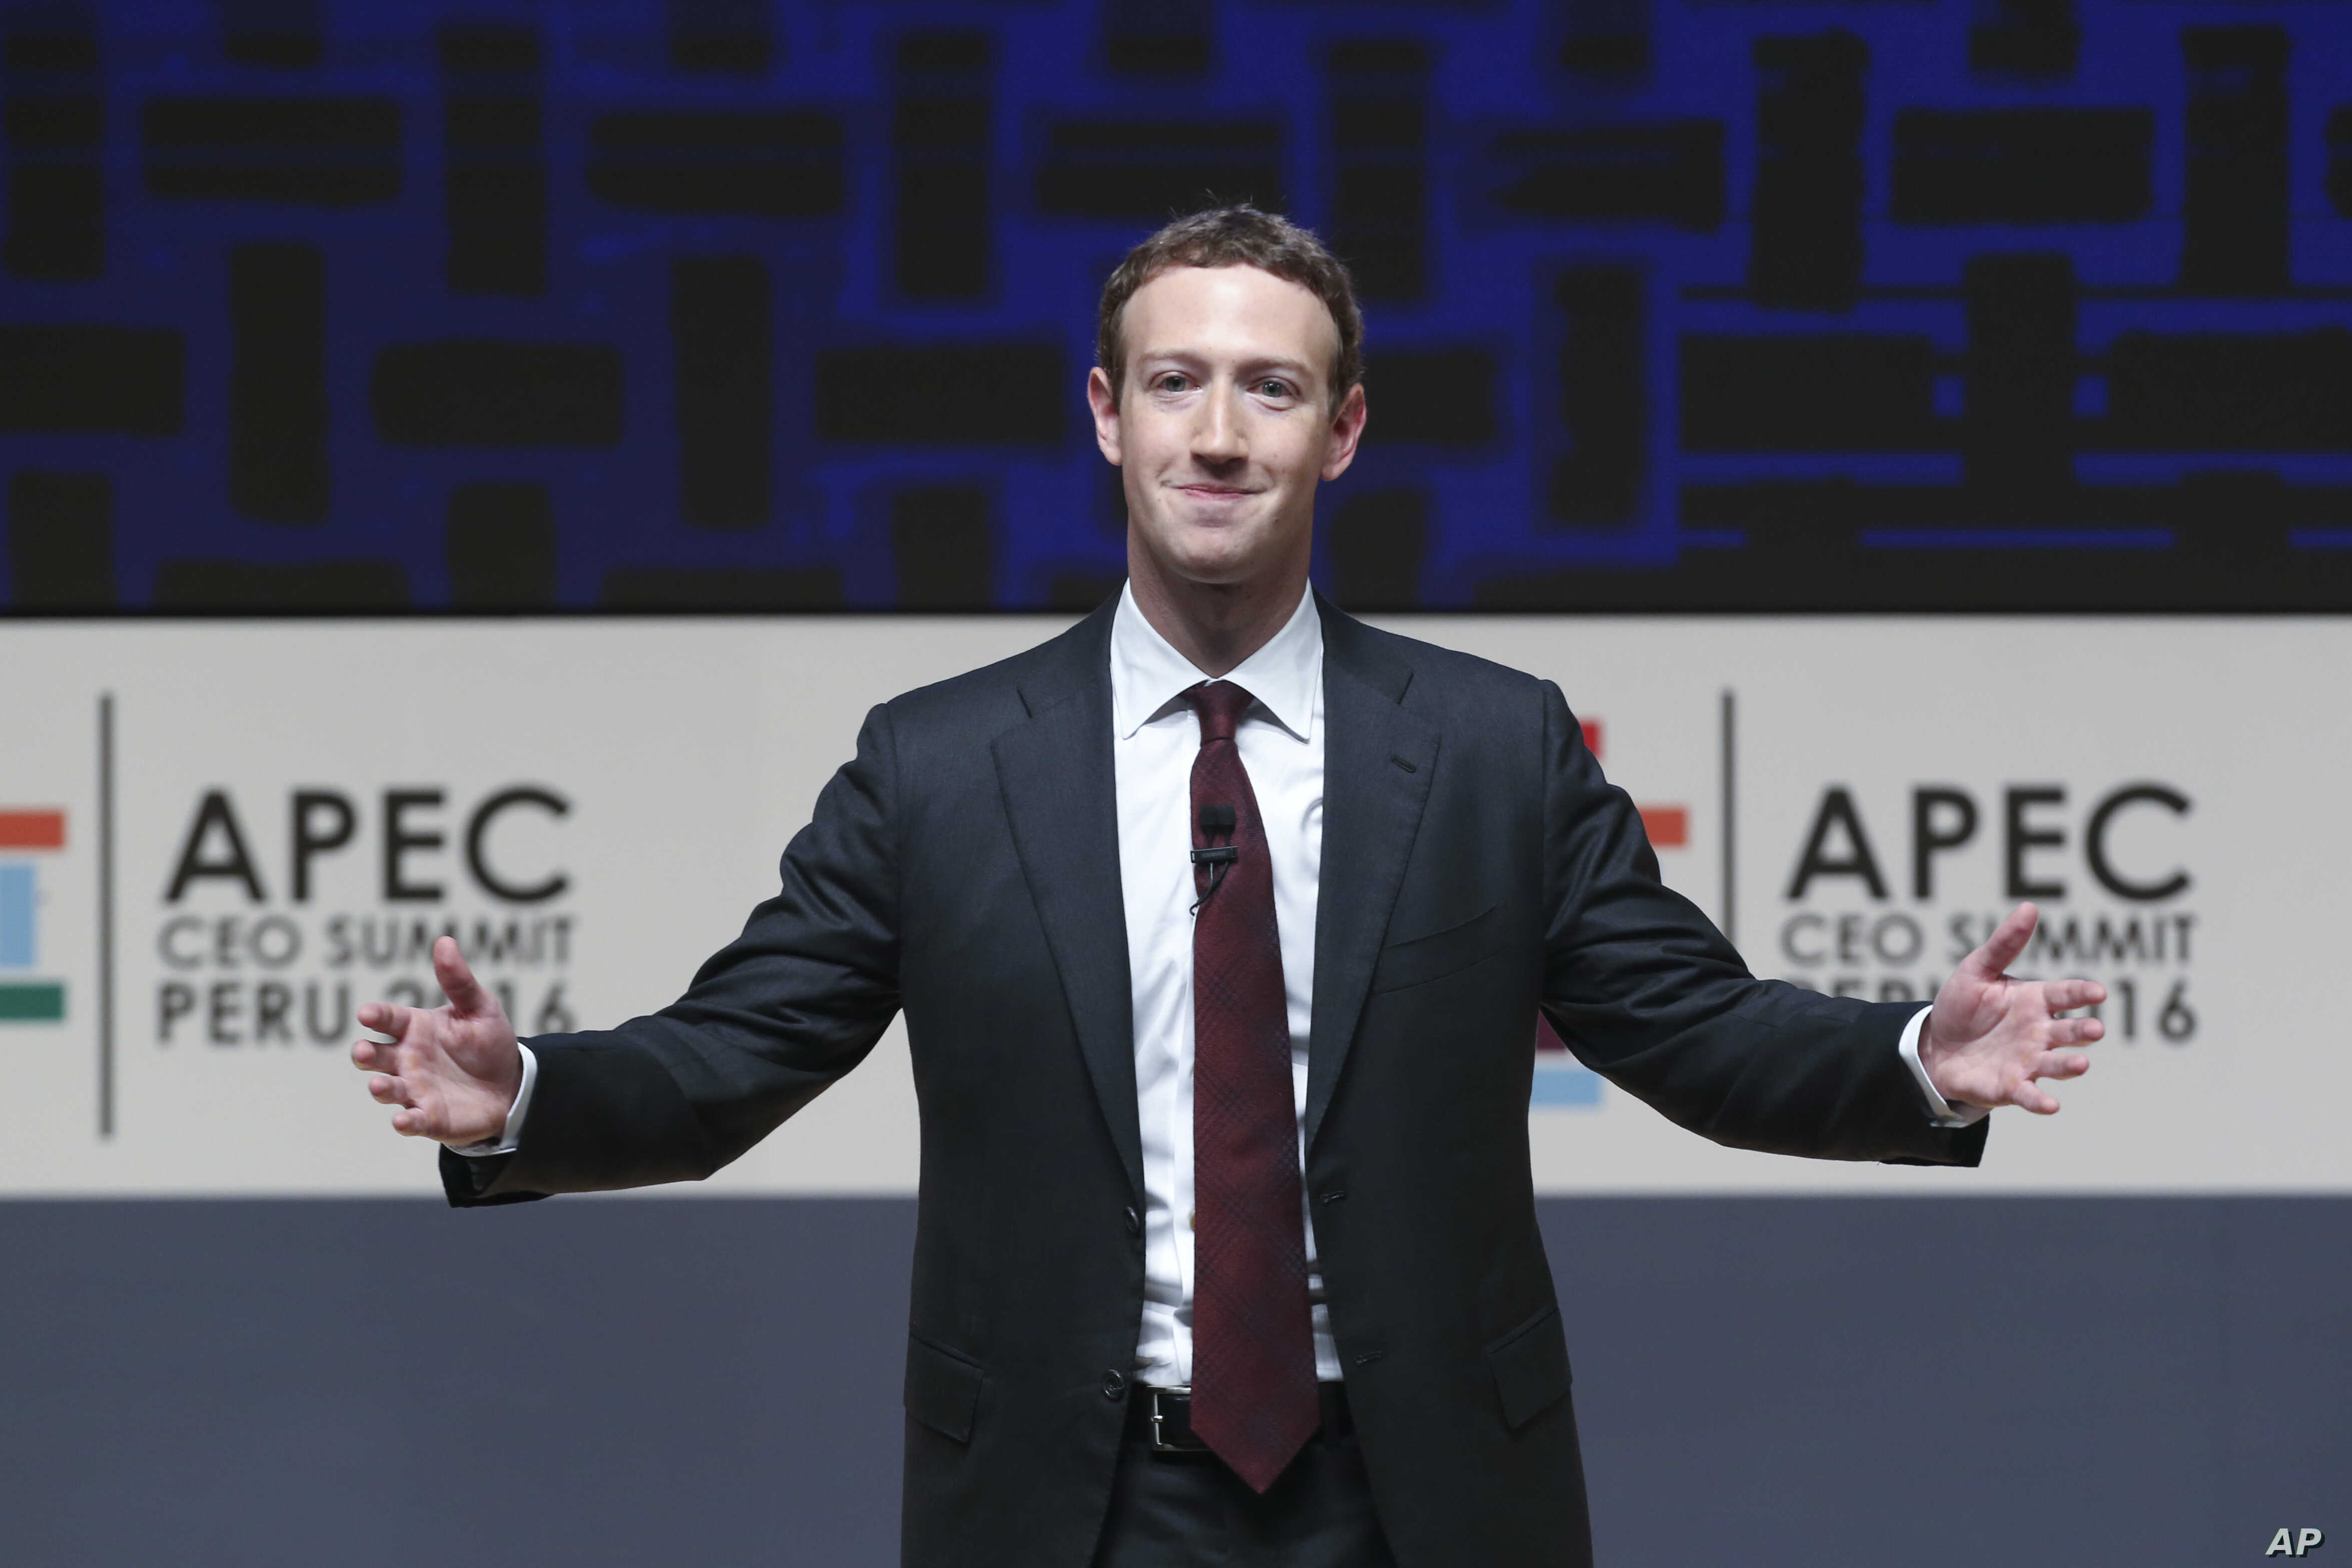 Zuckerberg Pushes Internet Connectivity in Address to World Leaders